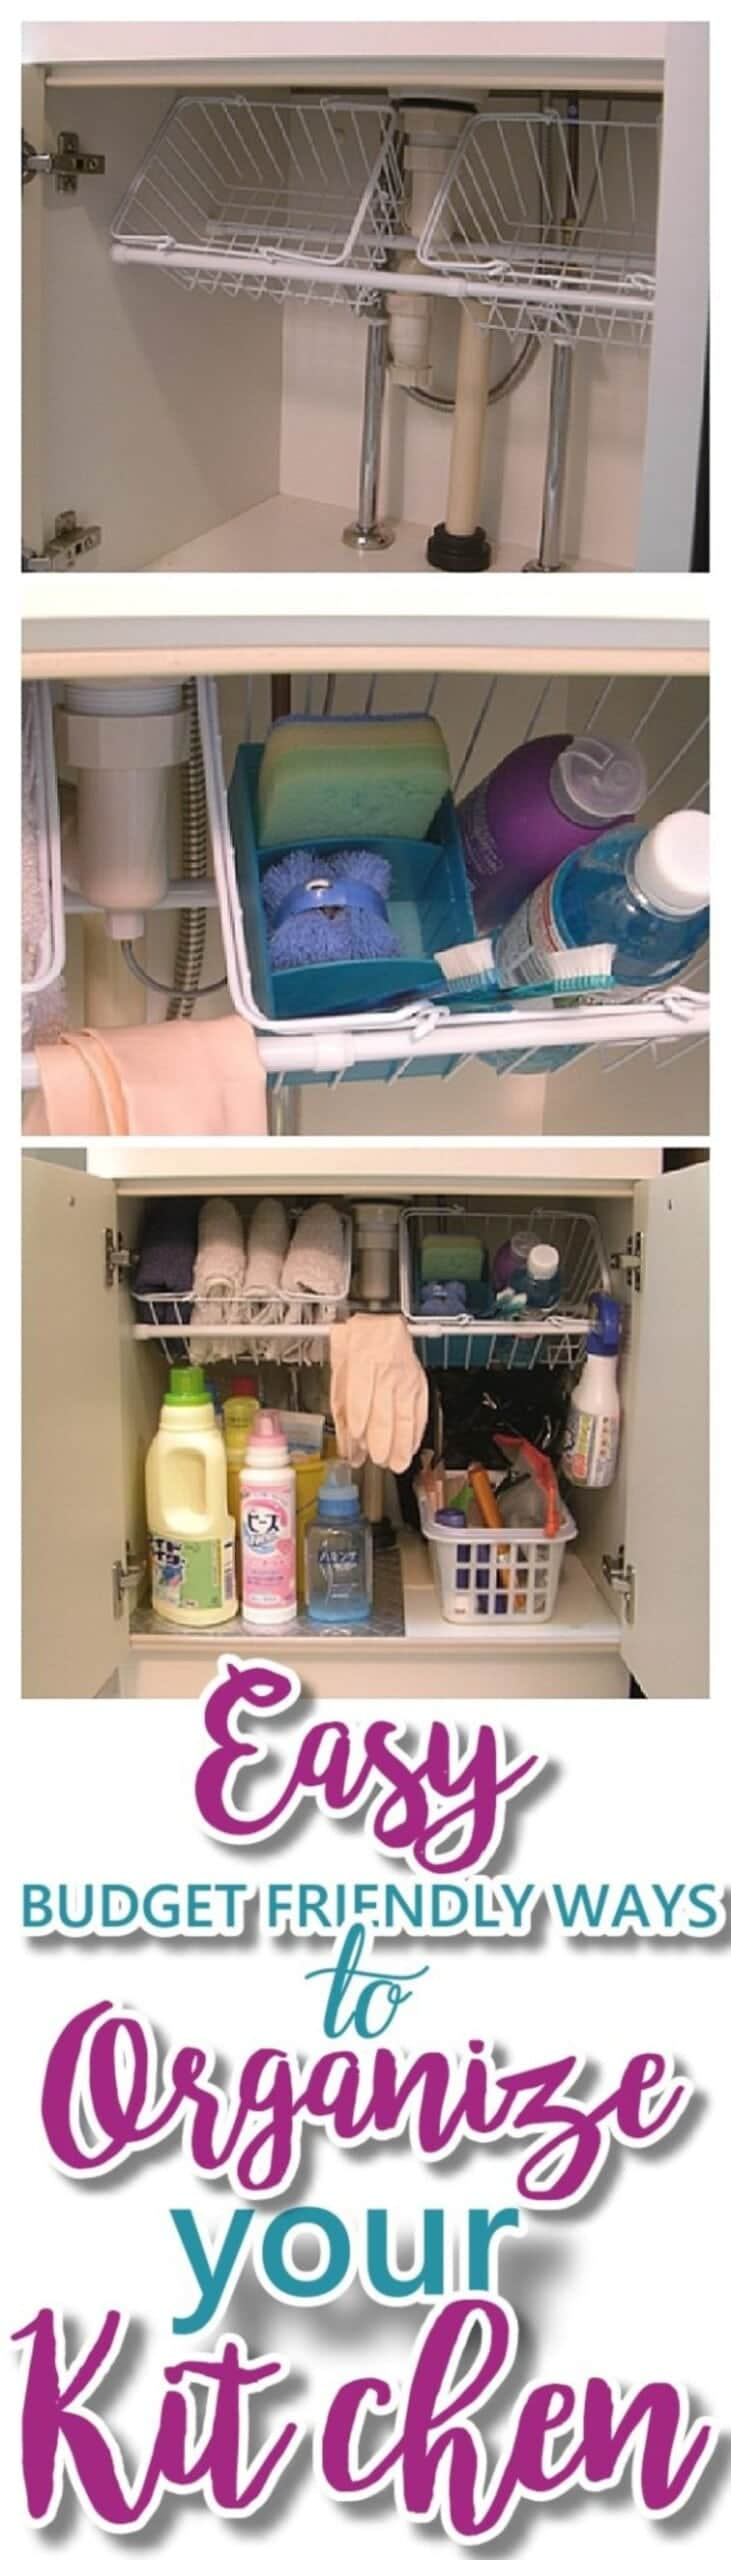 Several views of under sink cabinets with cleaning products organised in them